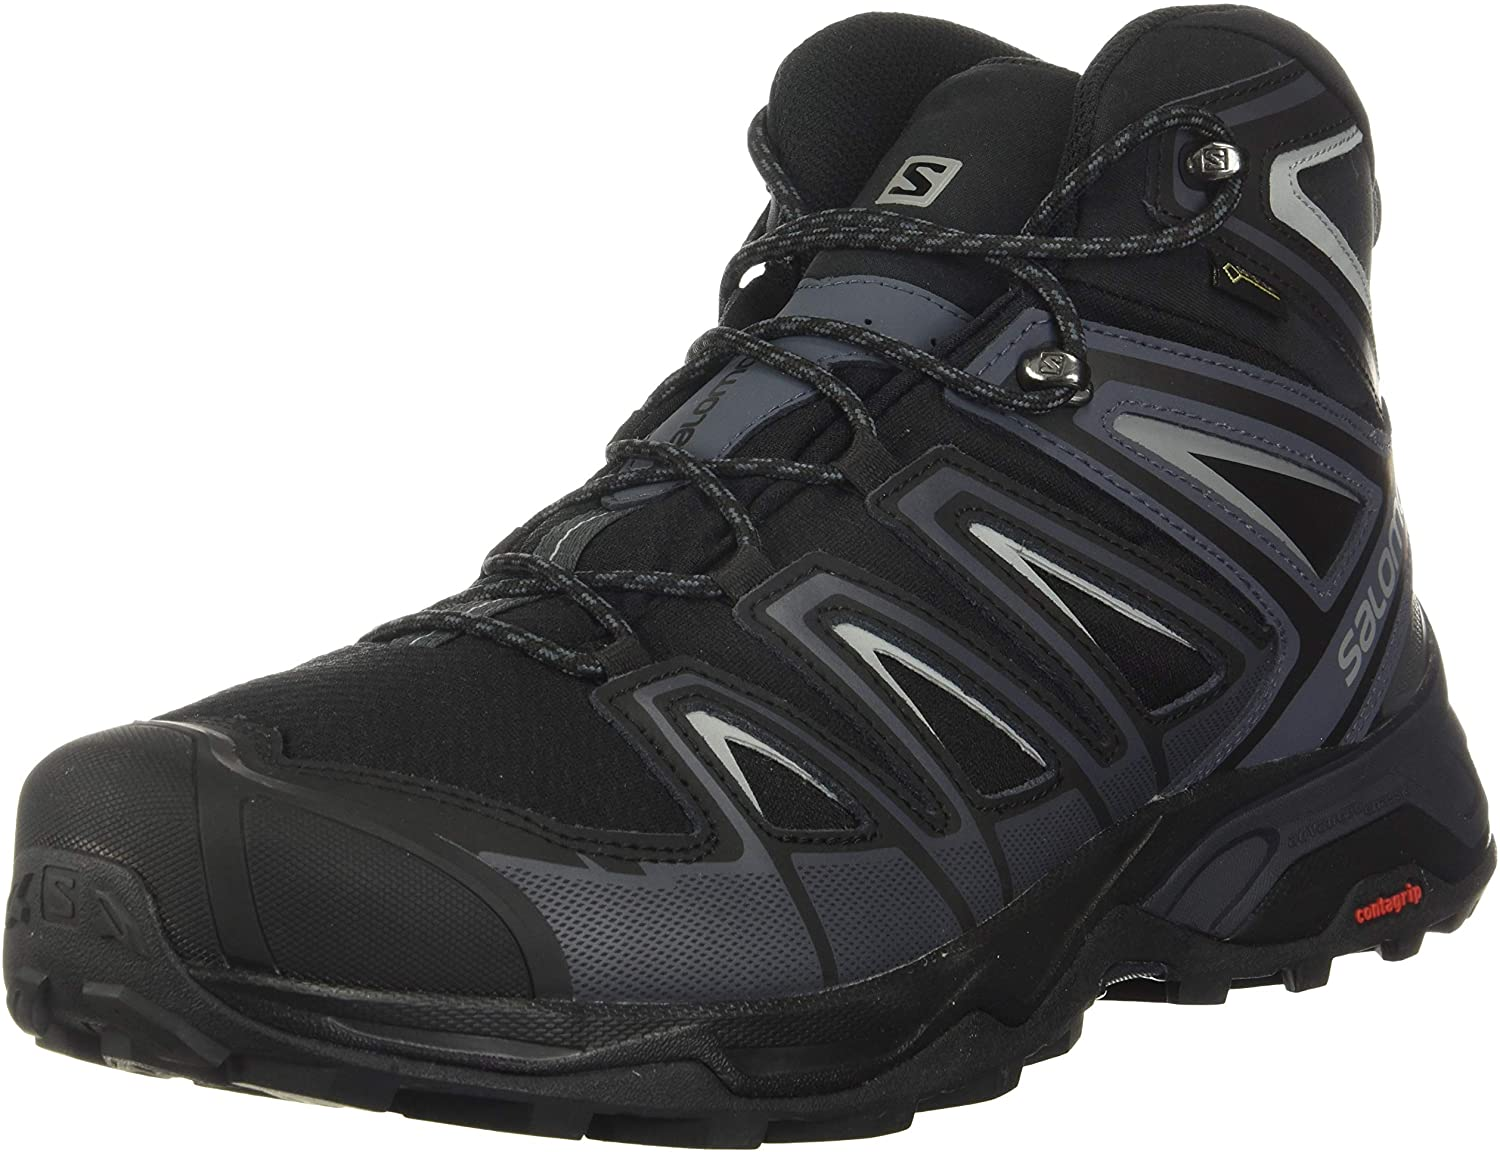 Salomon Gifts Men's X A surprise price is realized Ultra 3 Wide Hiking Mid GTX